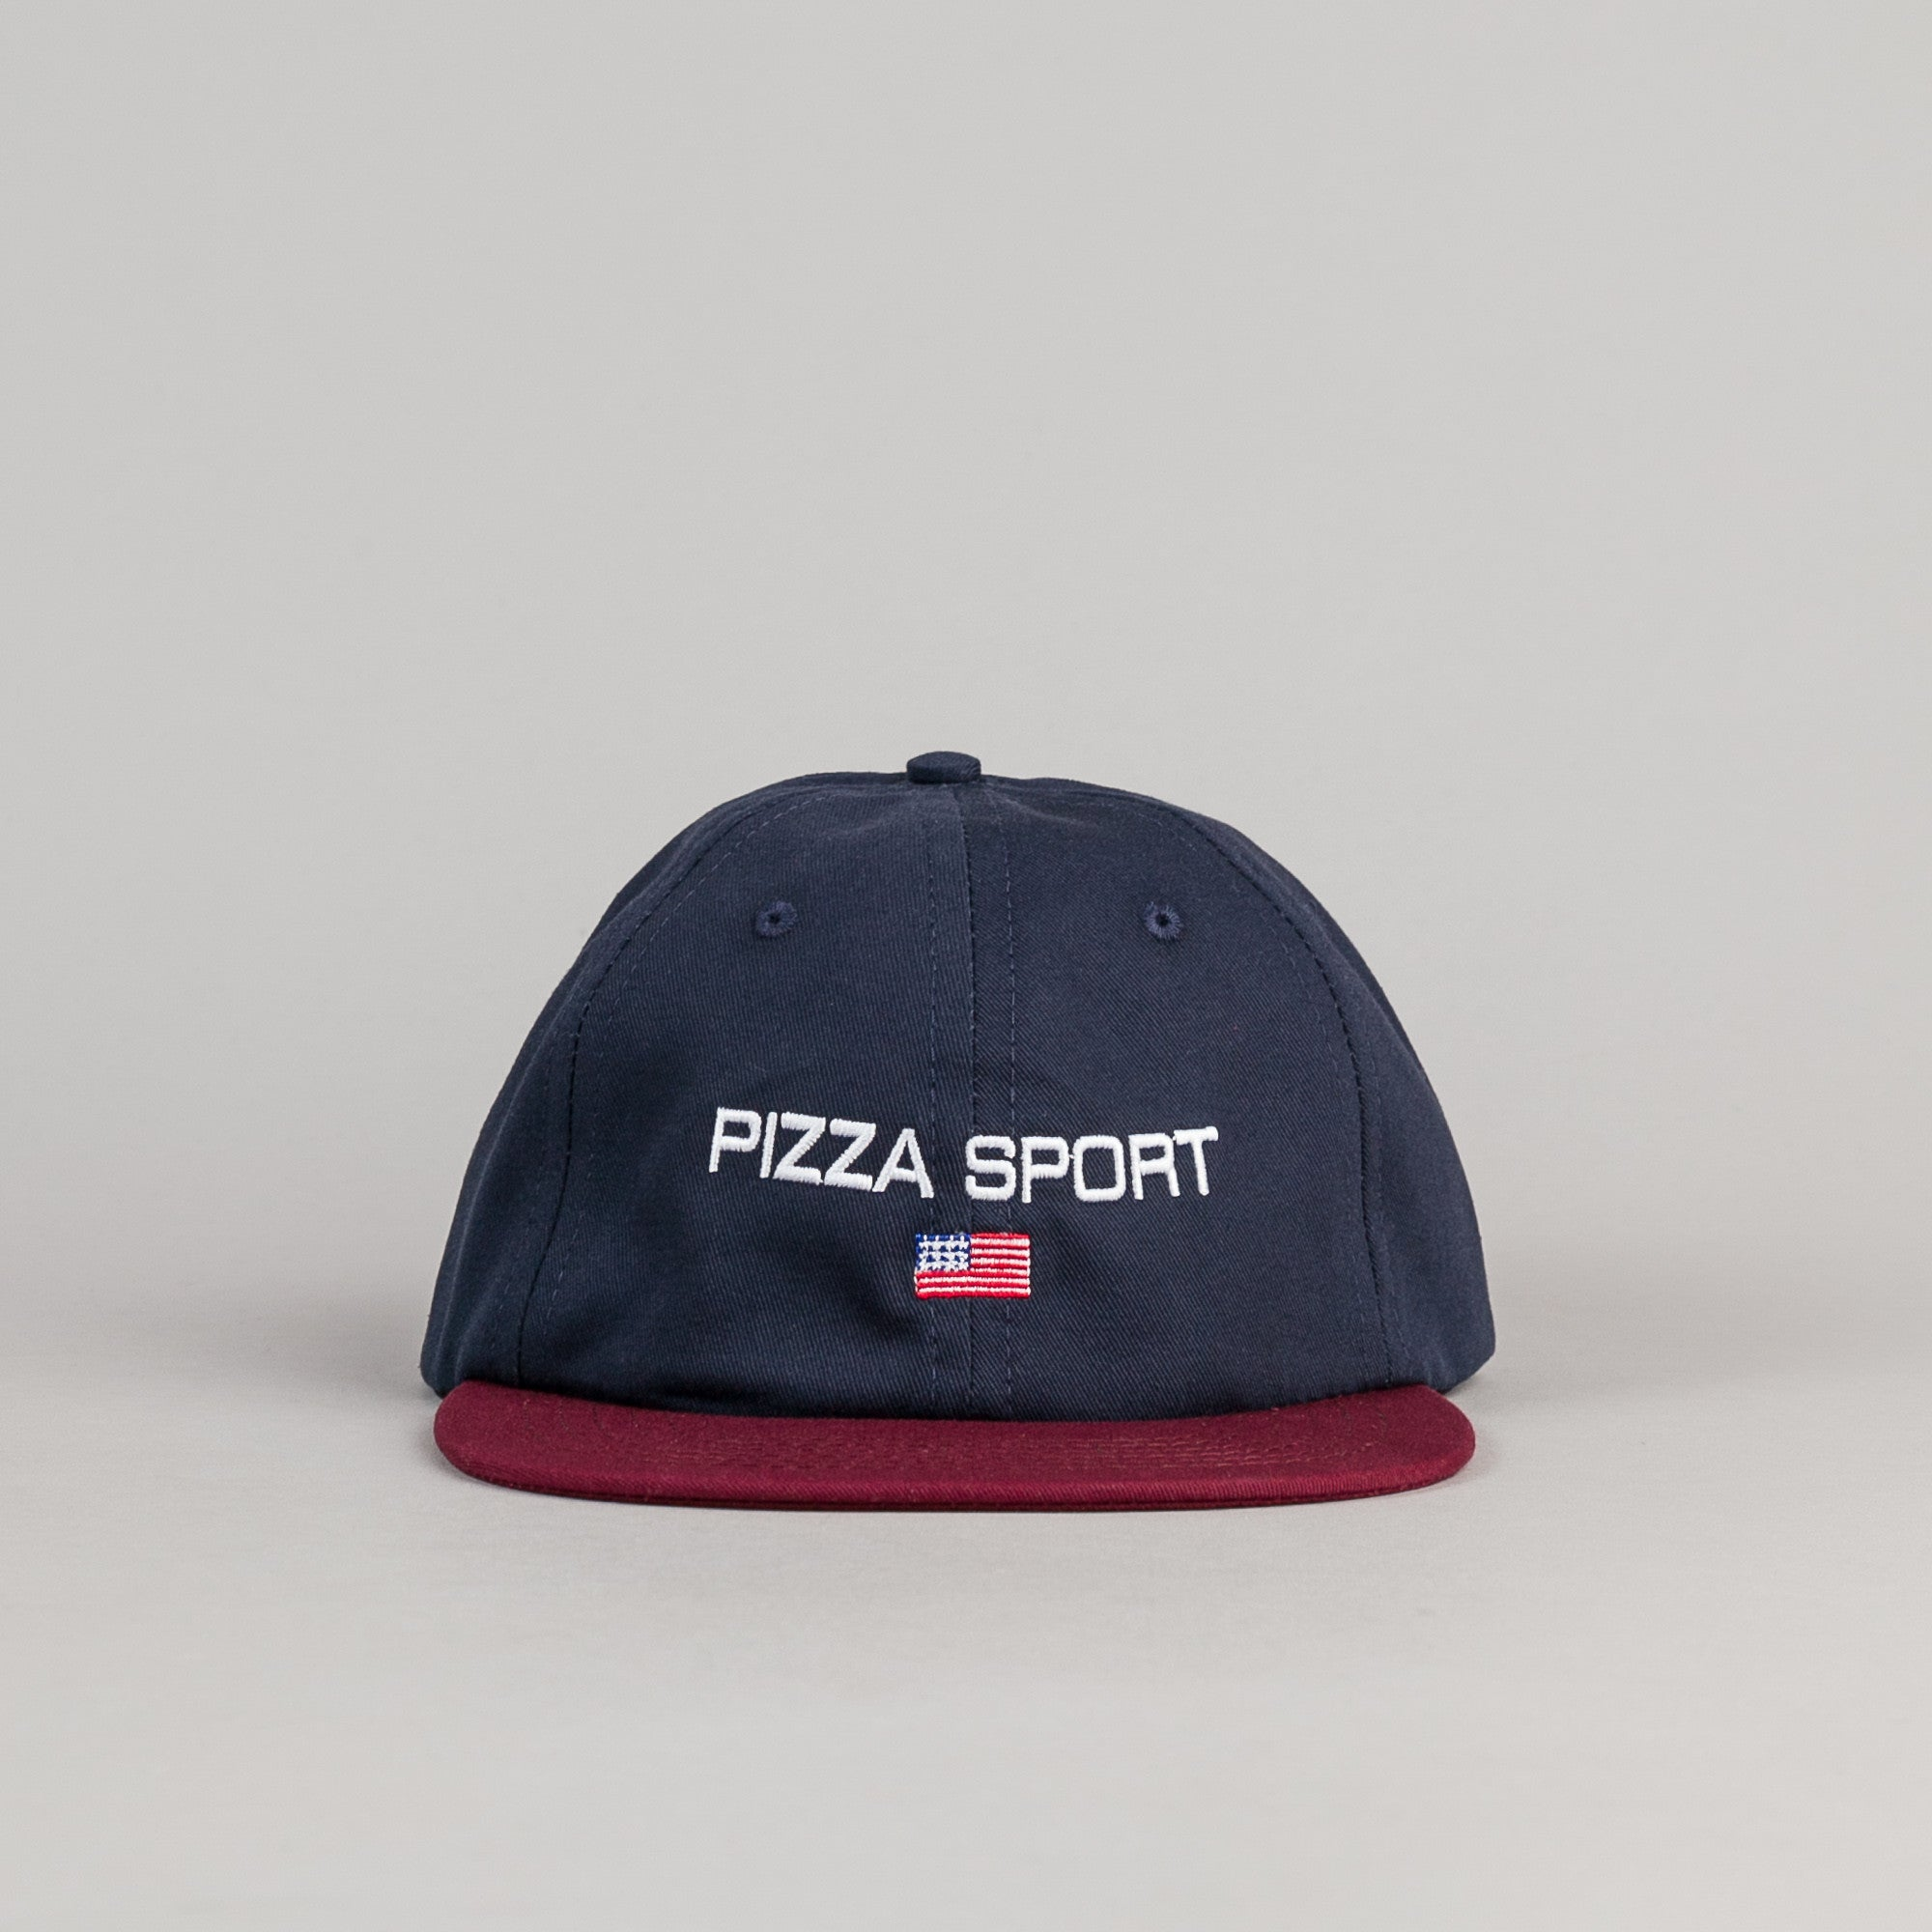 Pizza Skateboards Pizza Sport Cap - Blue / Red